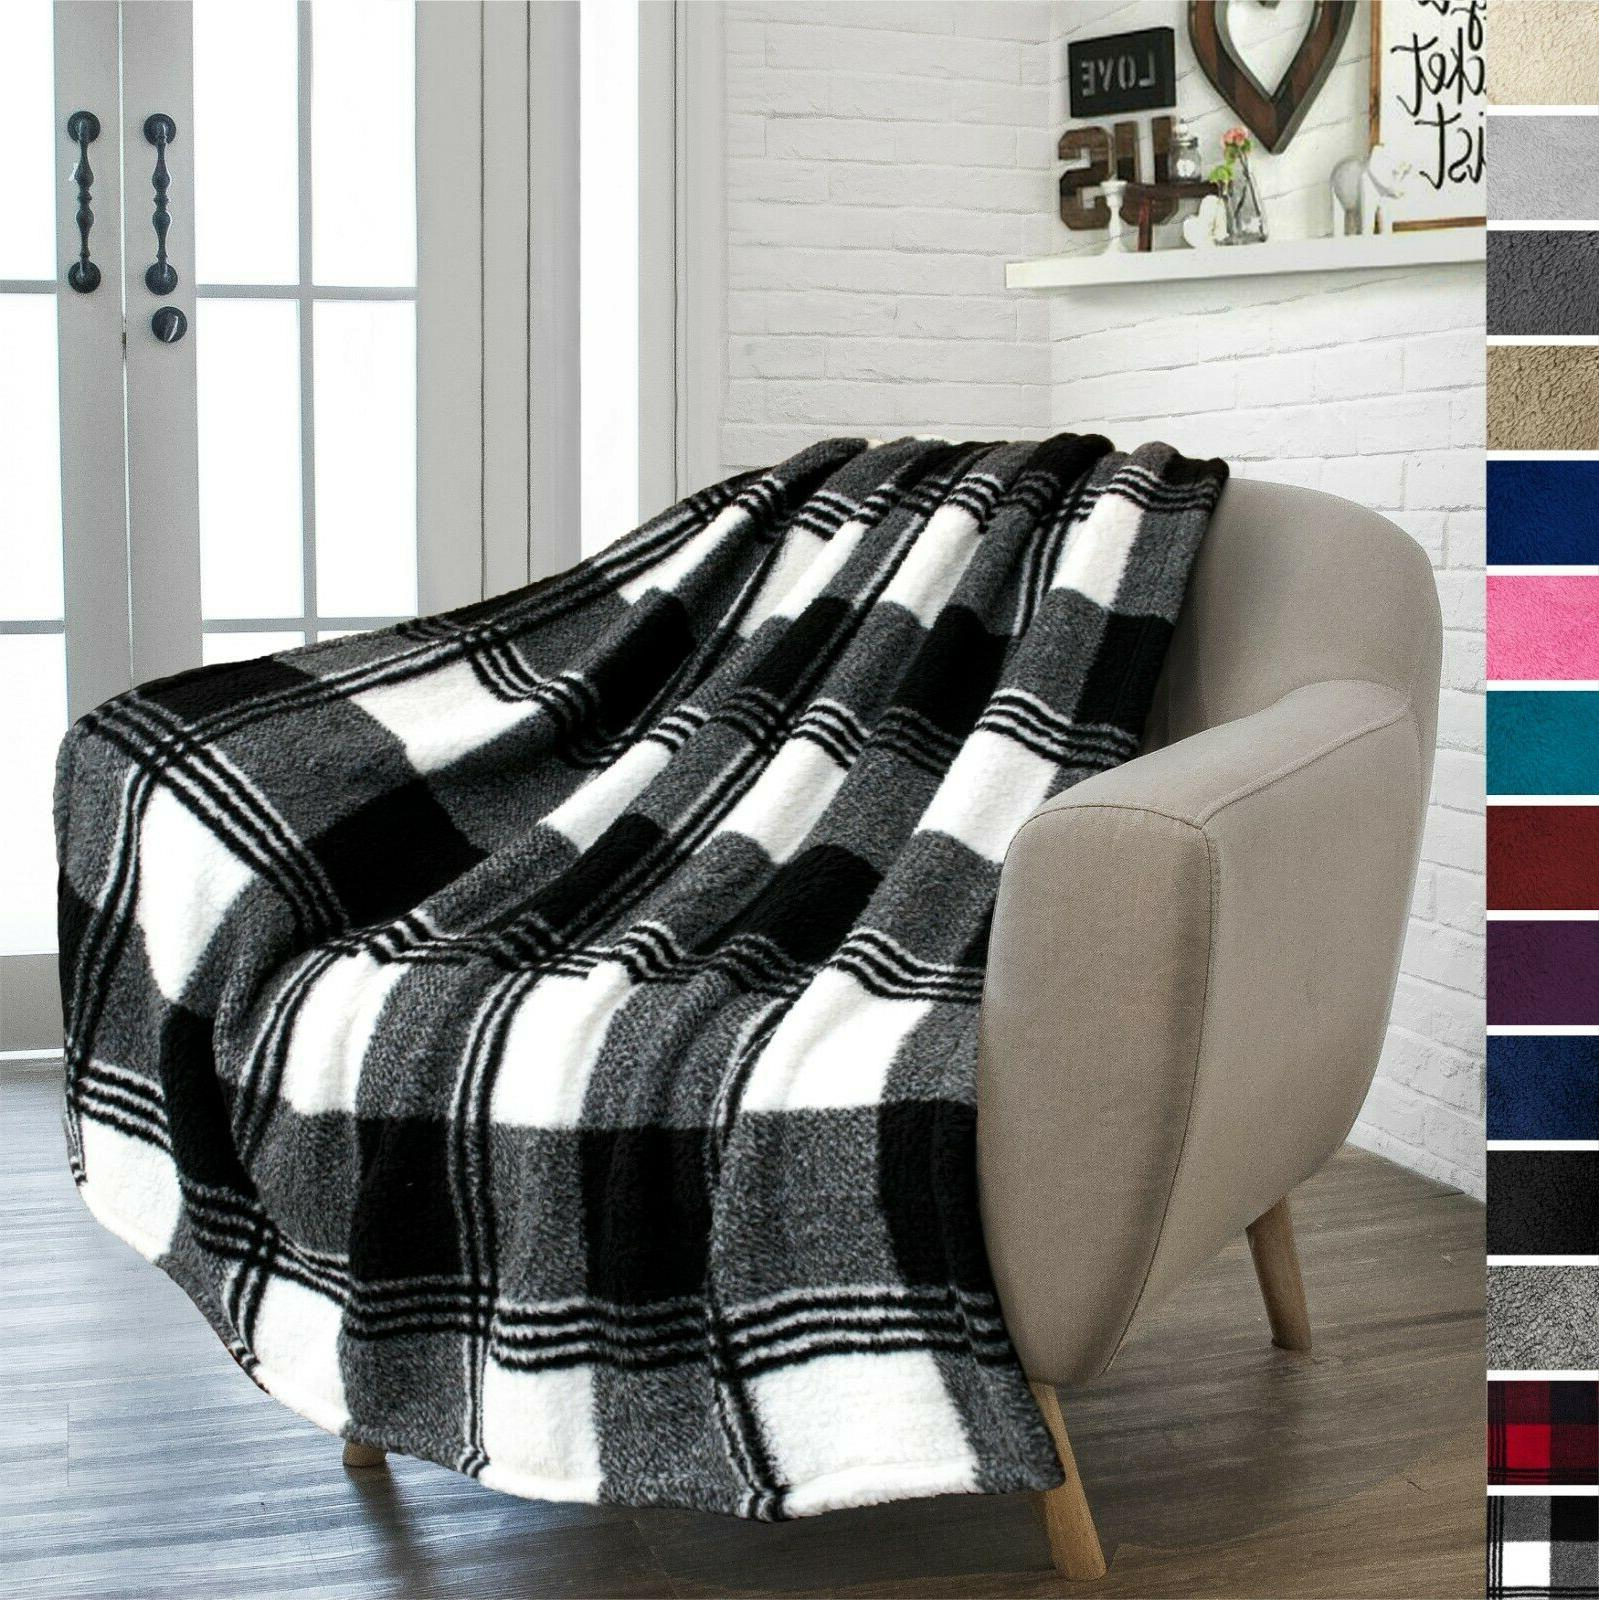 Sherpa Fleece Plush Soft Couch Fur Blanket